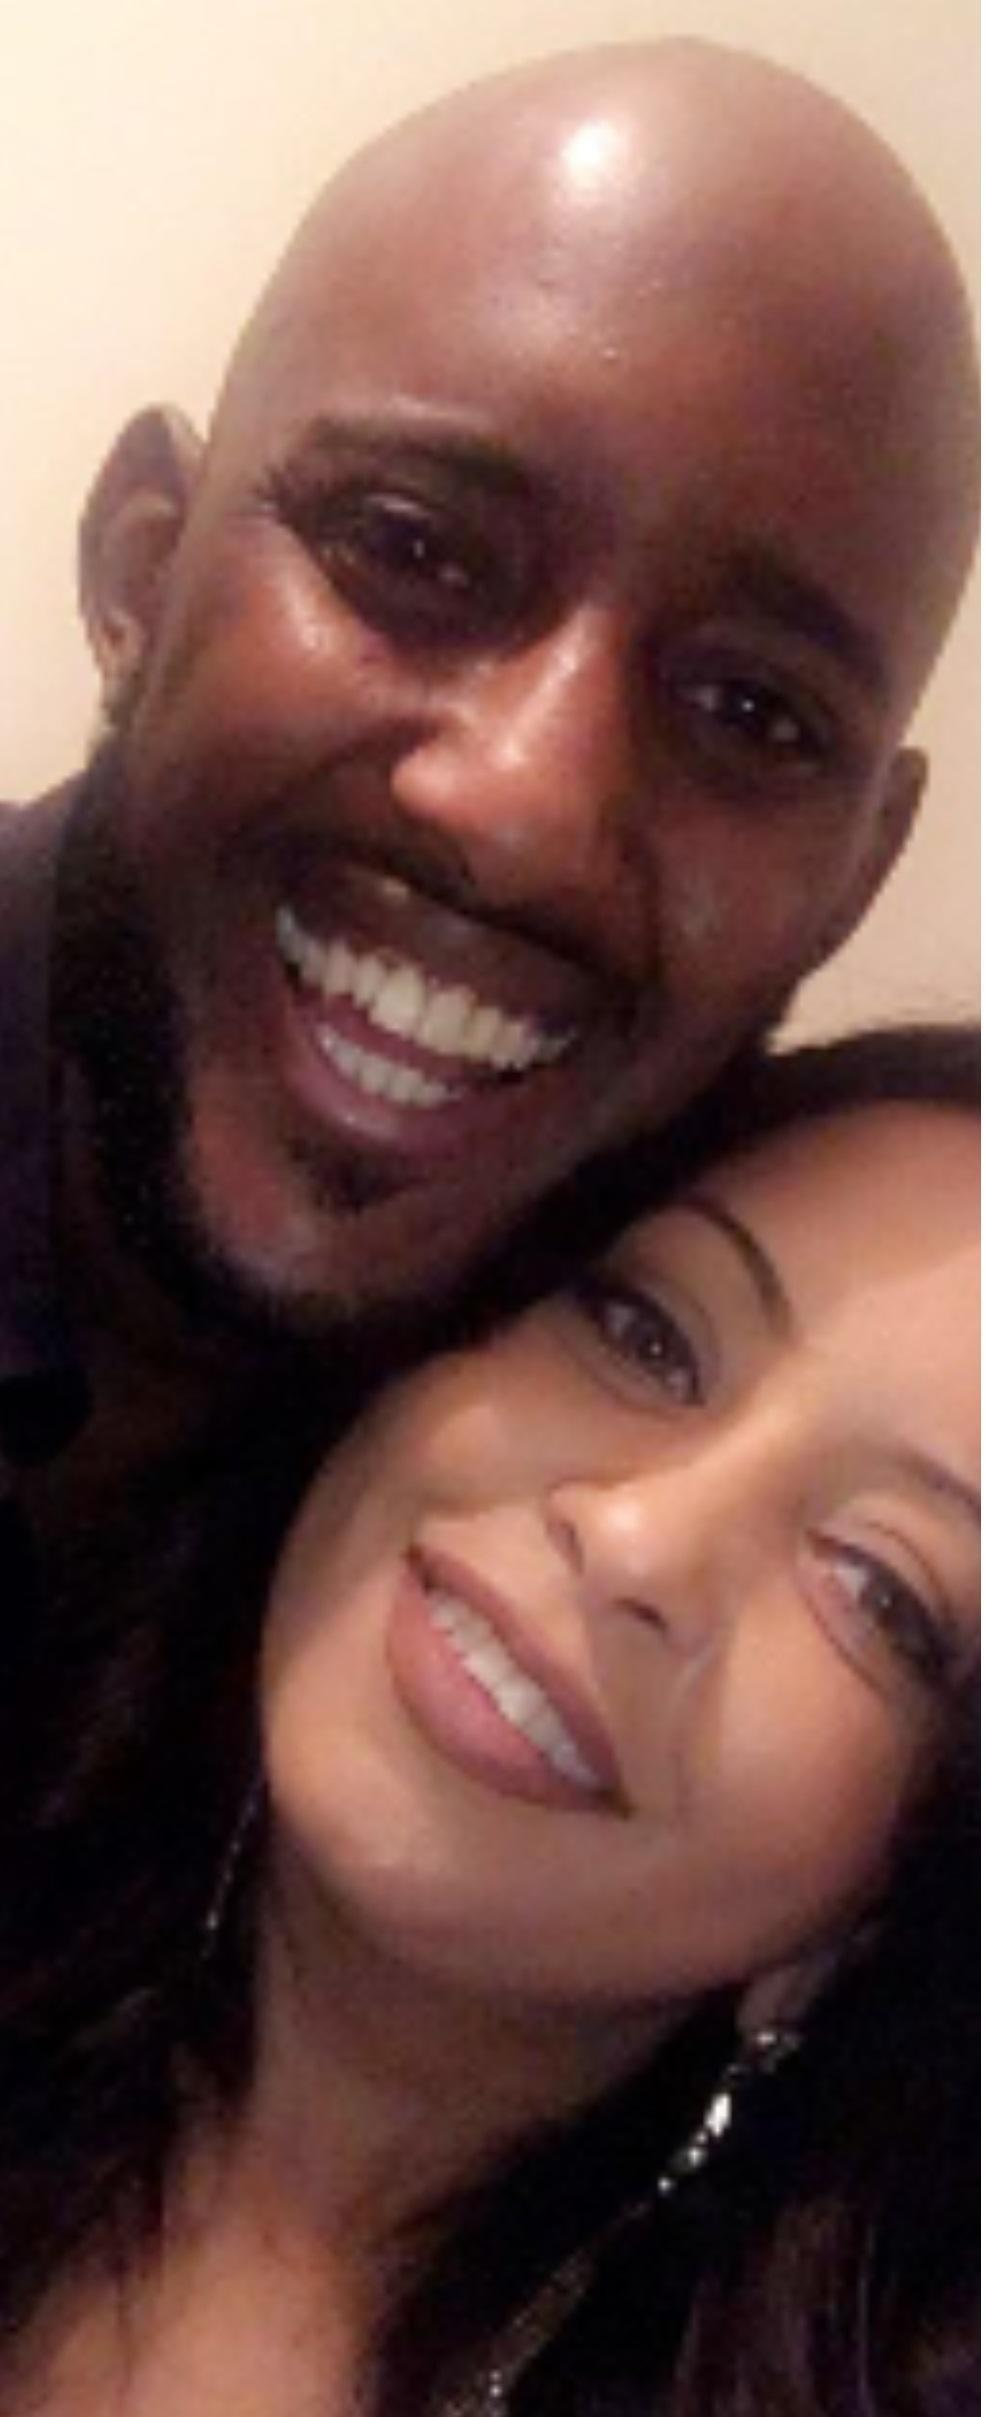 Umi Noor denied her connection to Michael Hassan until police found the selfie on her mobile phone (gmp)